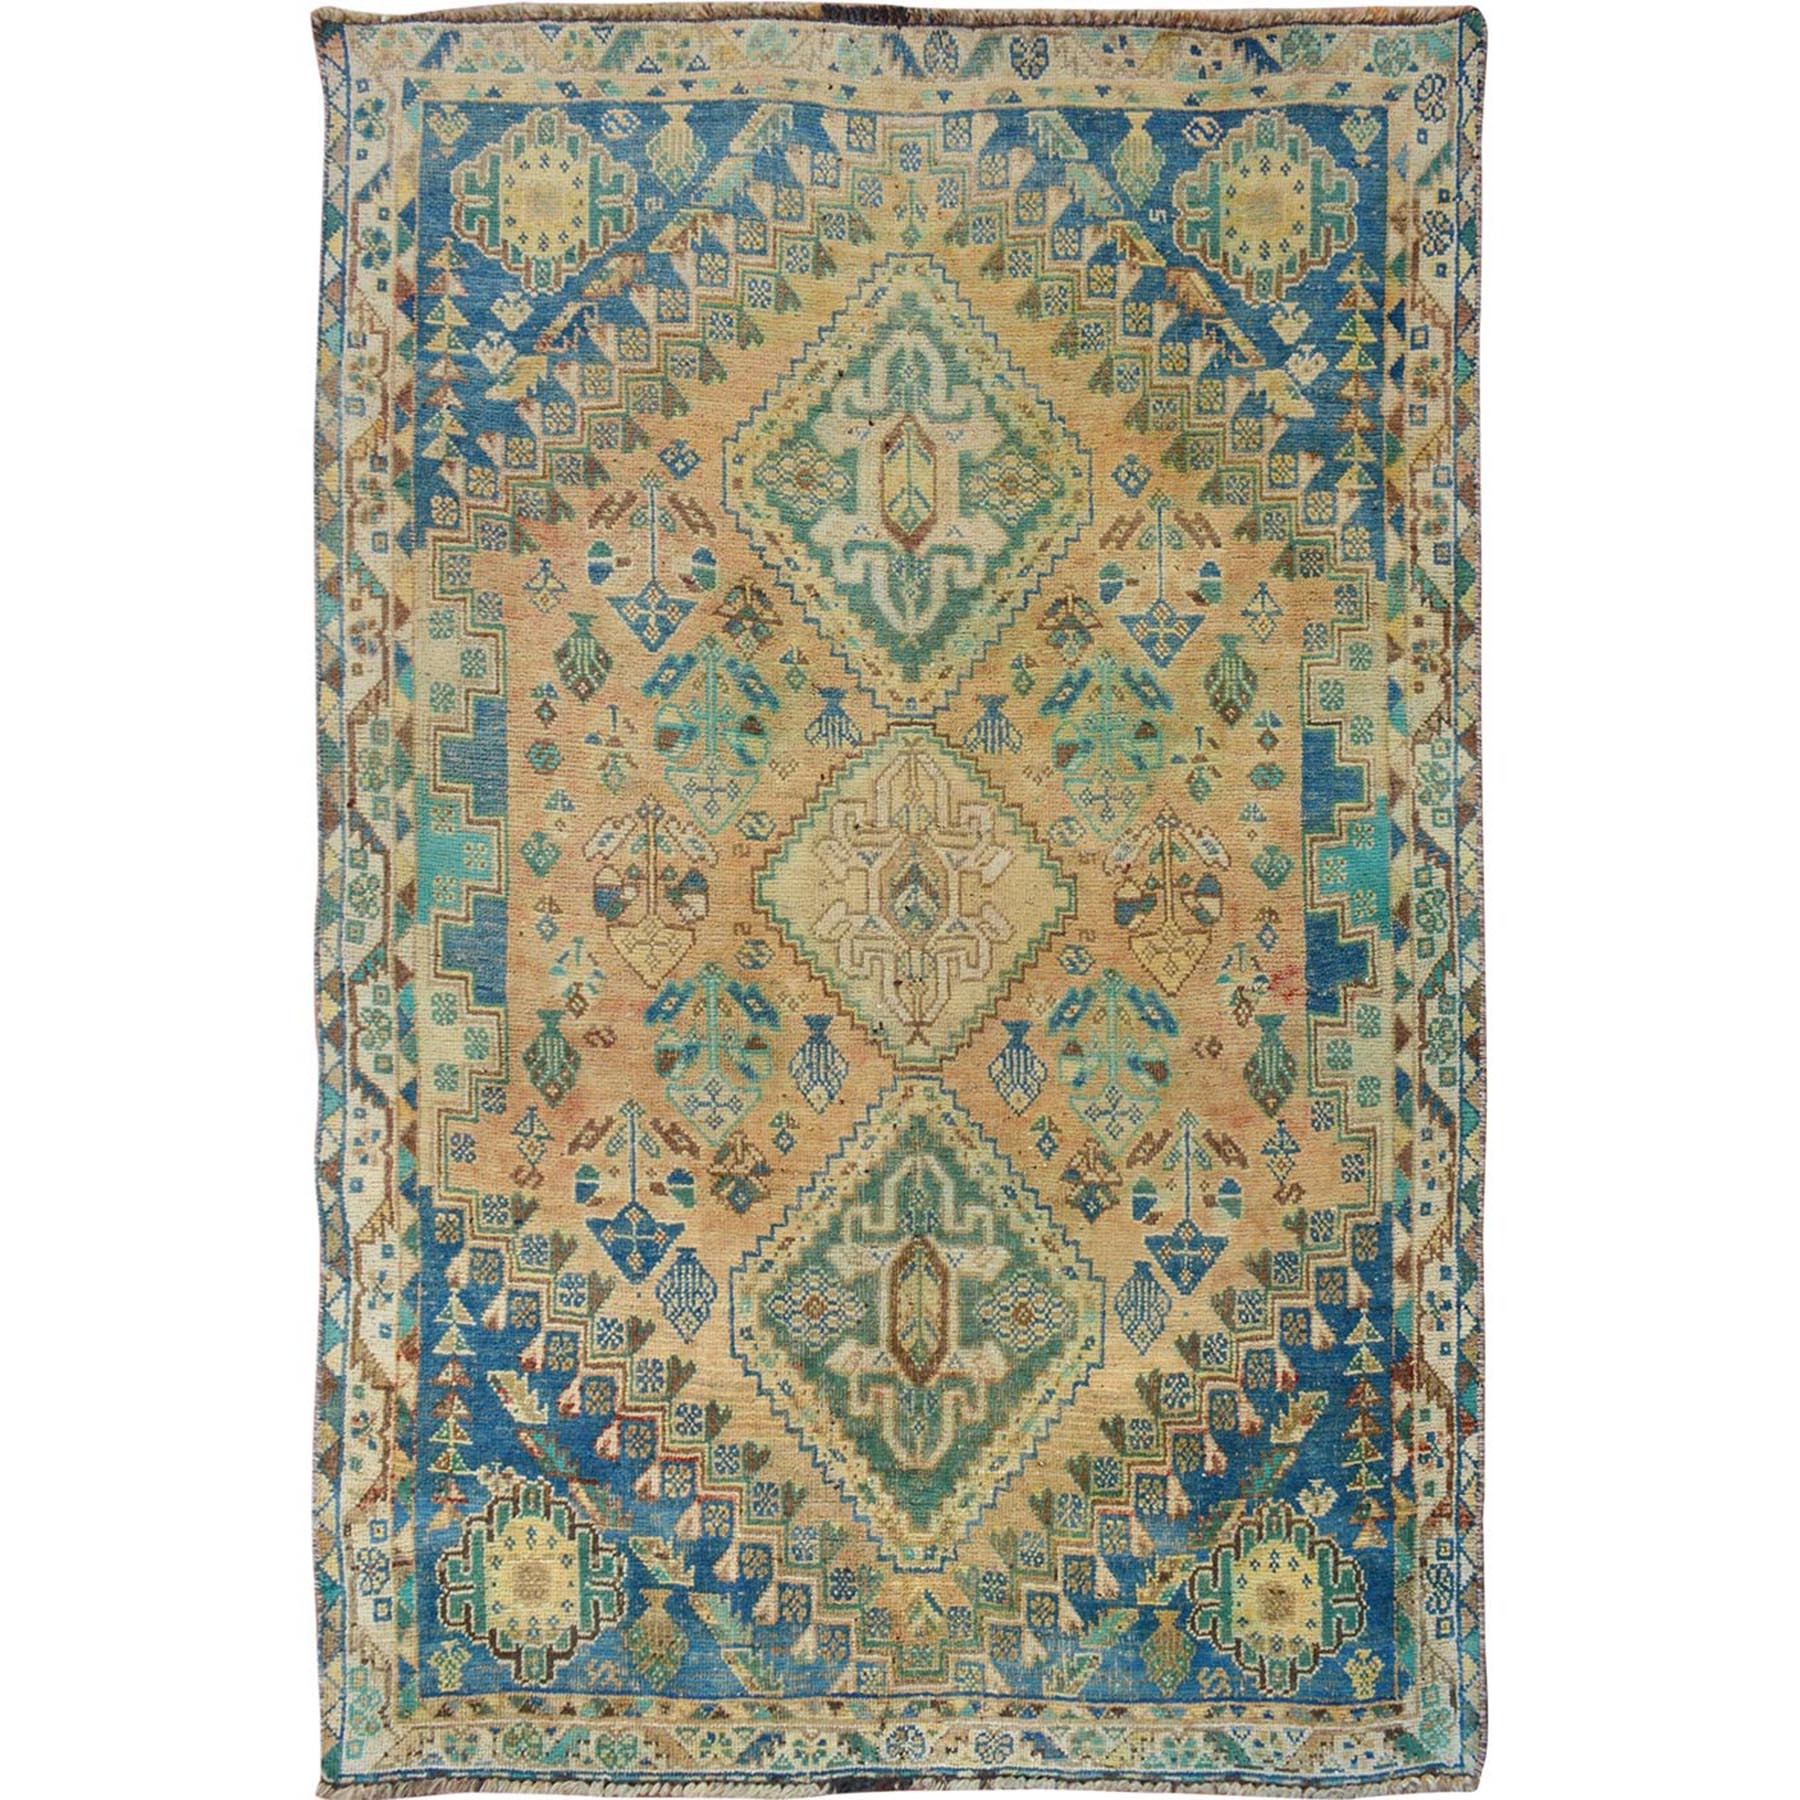 "3'8""x5' Natural Colors Vintage & Worn Down Persian Bakhtiari Pure Wool Hand Woven Oriental Rug"